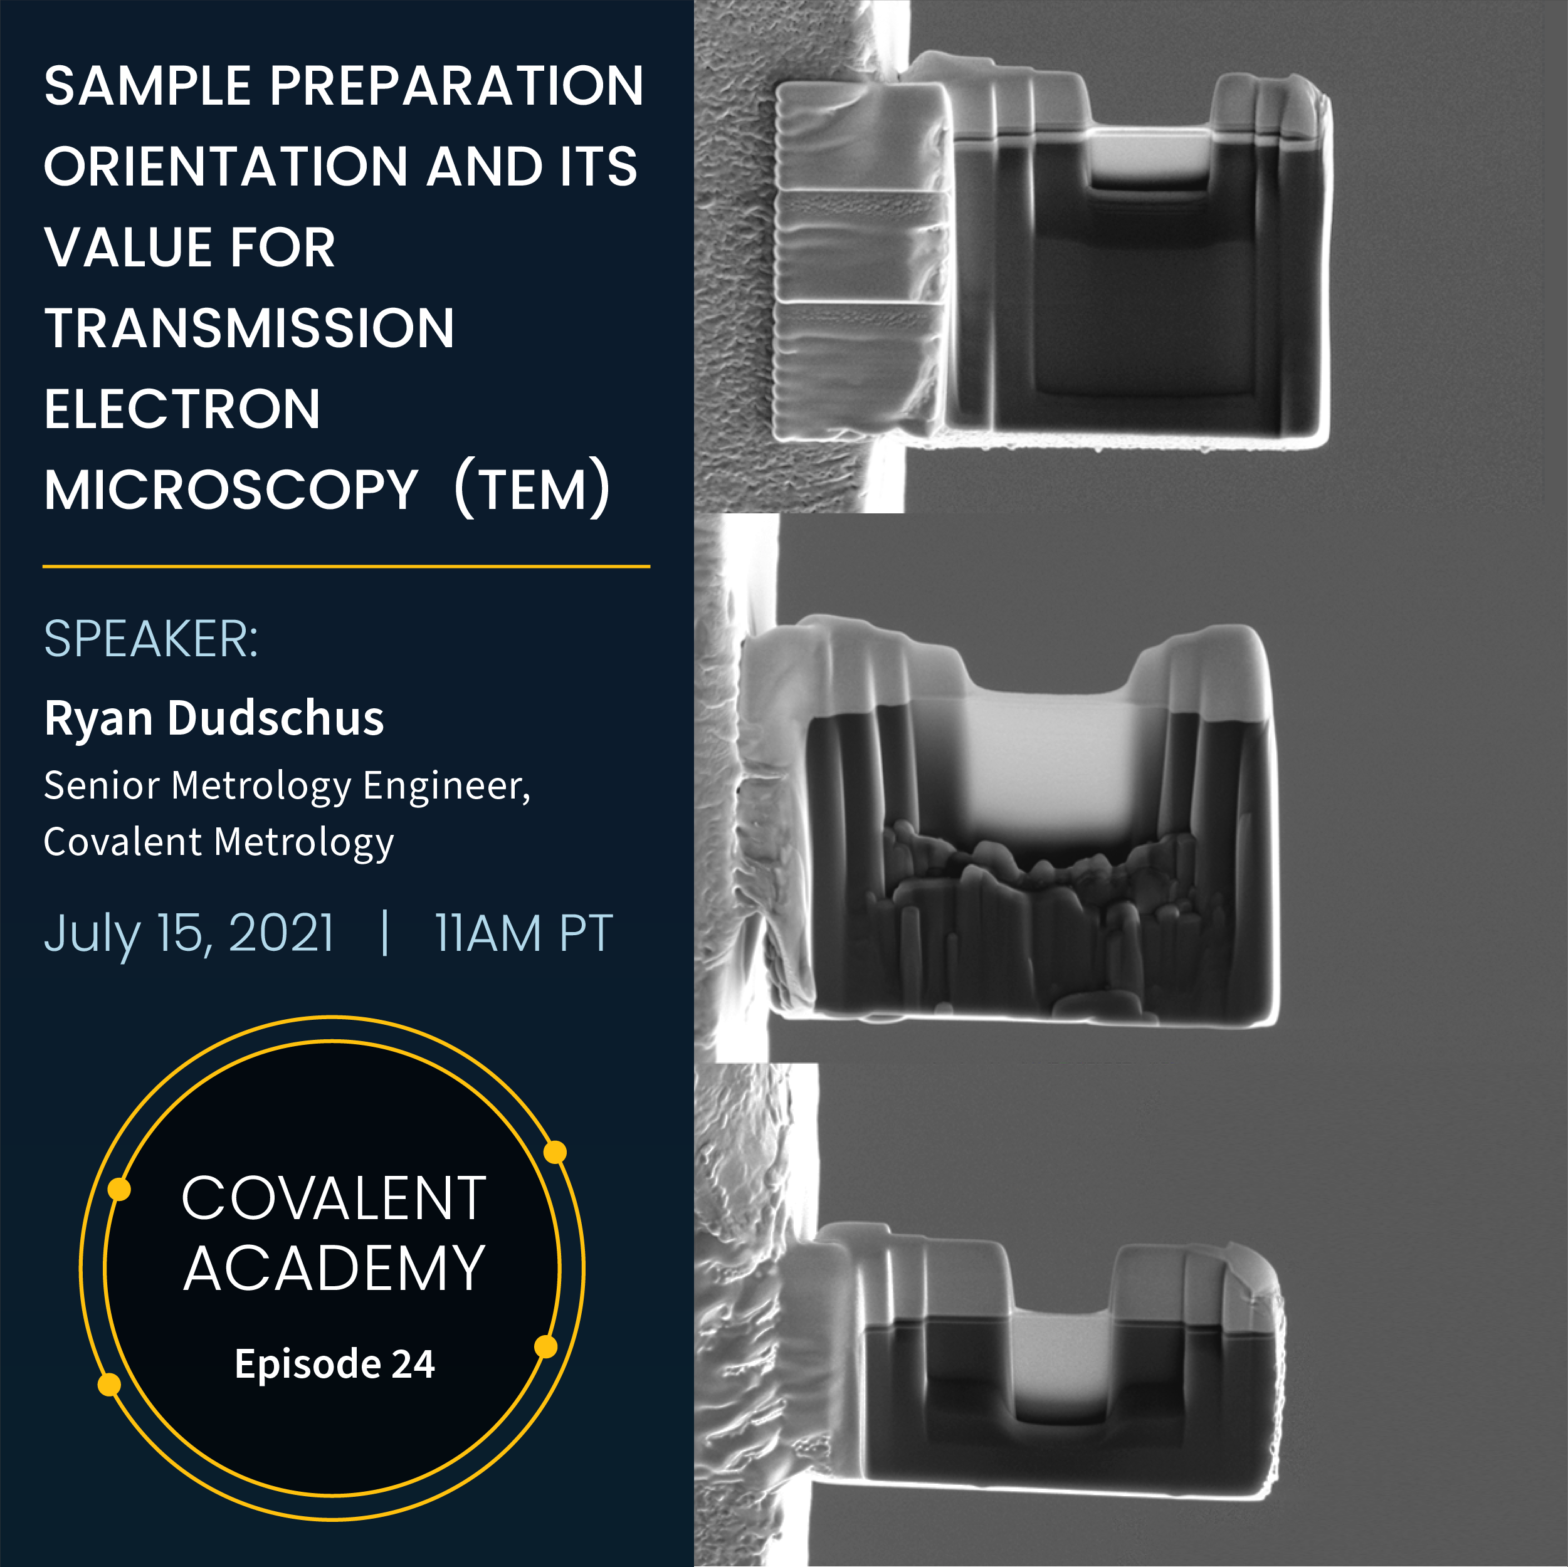 Sample Preparation Orientation and its Value for (Scanning) Transmission Electron Microscopy